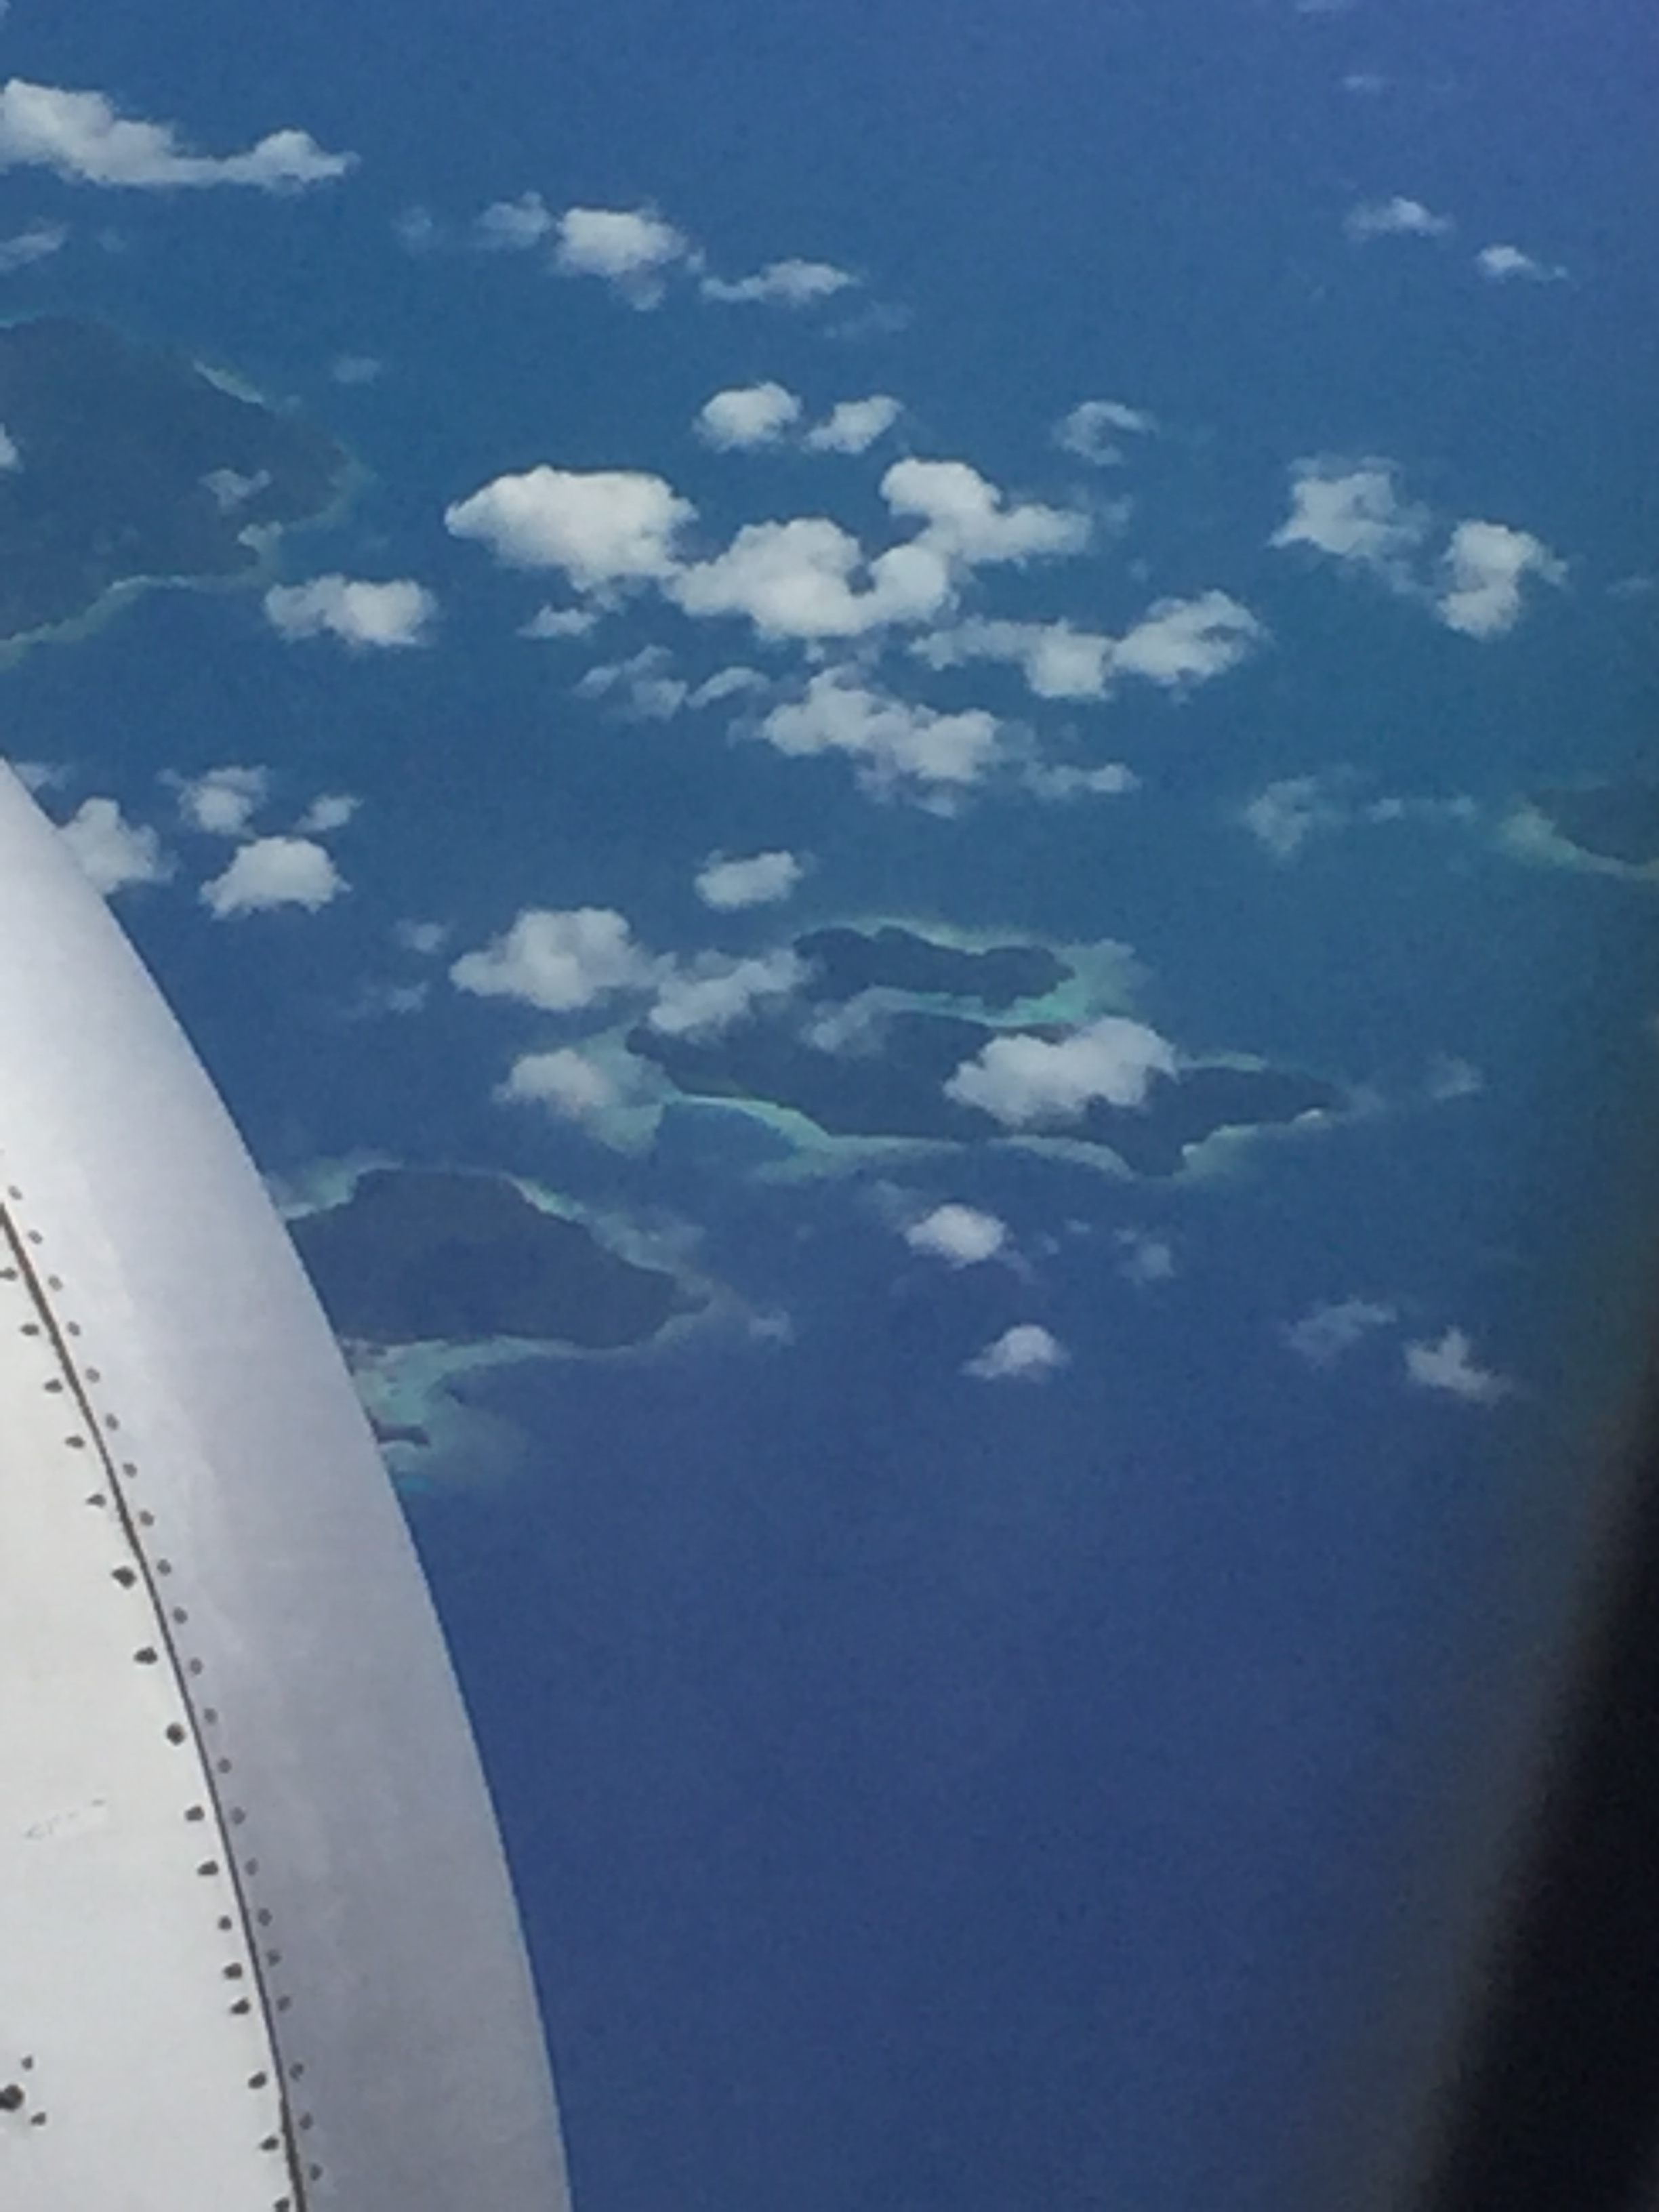 Flying over the Pacific en route from Bali to Bangkok, We flew over these small isolated islands. Using the GPS I was able to identify them as Natuna islands, home to around 80,000 people, mostly Malay. Seems like a good place for birdwatchers….